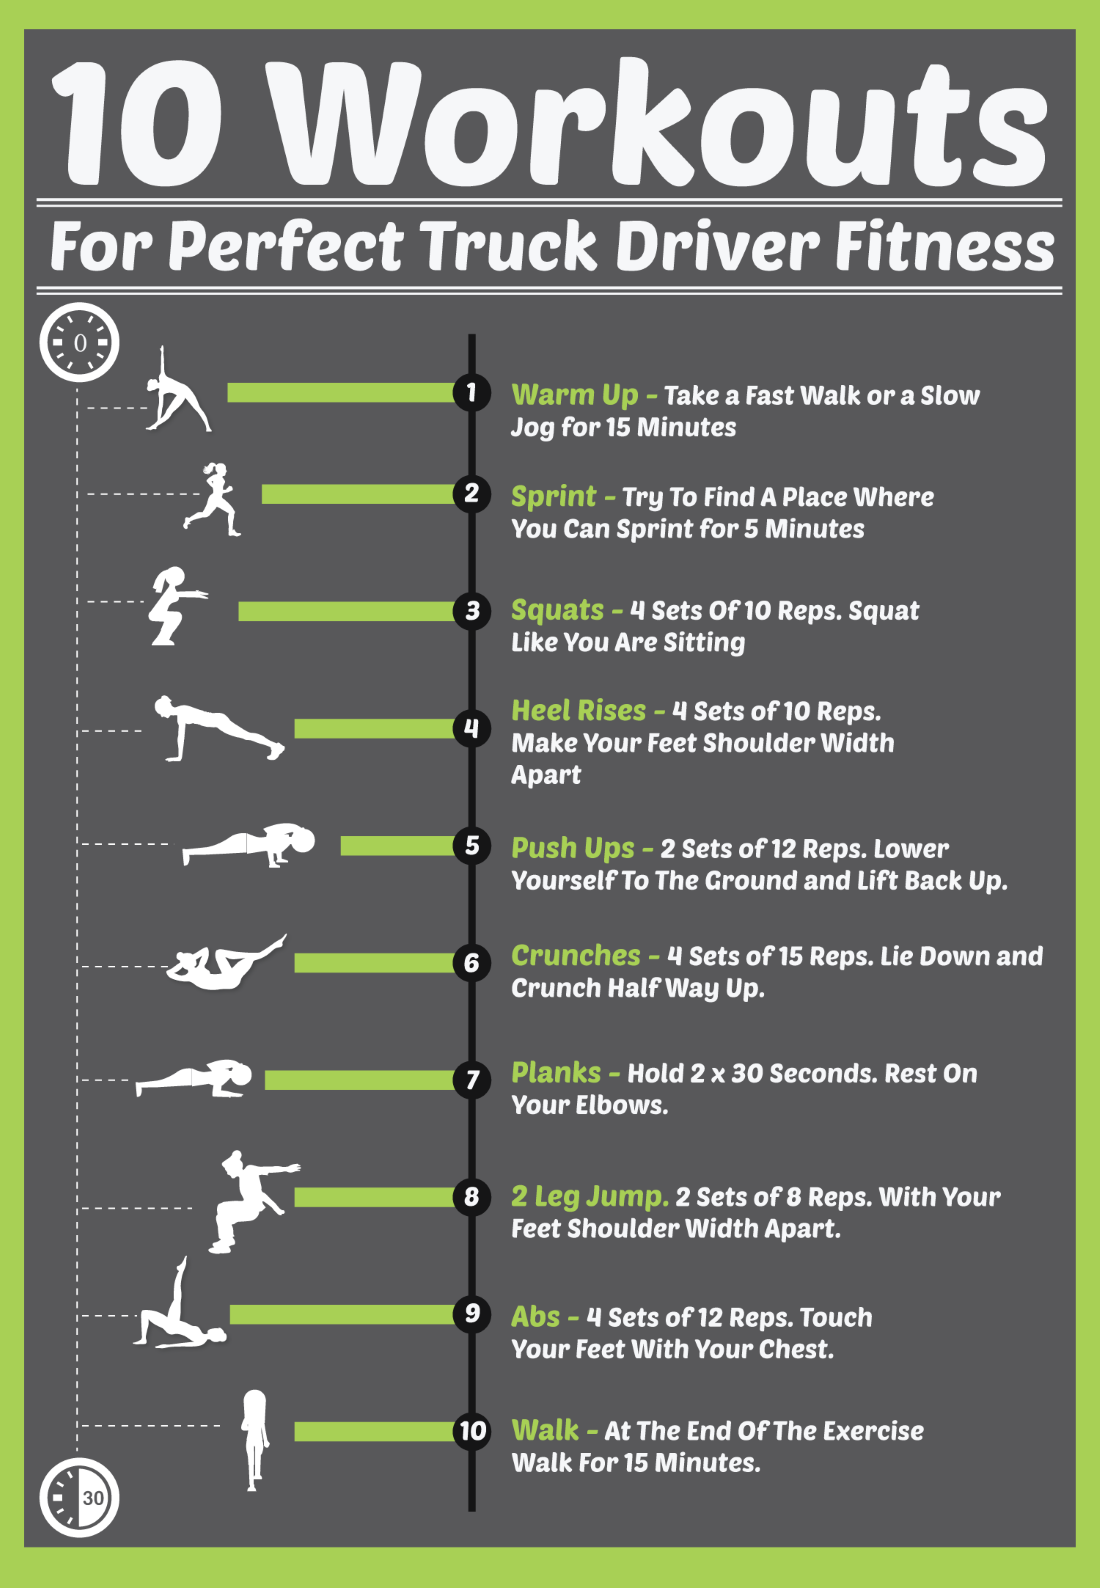 10 Workouts For Perfect HEALTHY DRIVER